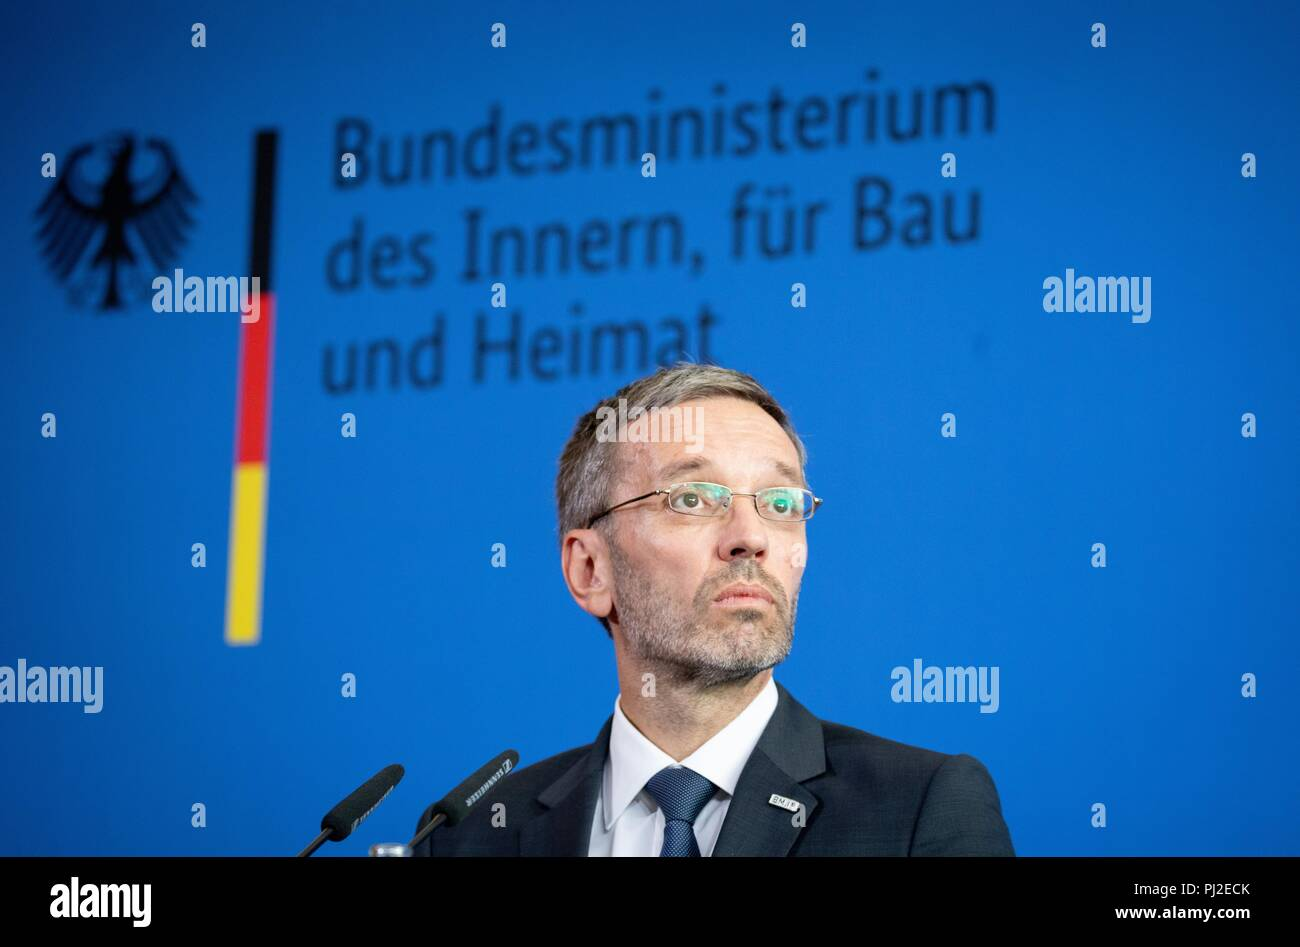 Berlin, Germany. 04th Sep, 2018. 04.09.2018, Berlin: Herbert Kickl (FPÖ), Minister of the Interior of Austria, gives a press conference after a meeting with Minister of the Interior Seehofer (CSU). Credit: Kay Nietfeld/dpa/Alamy Live News - Stock Image